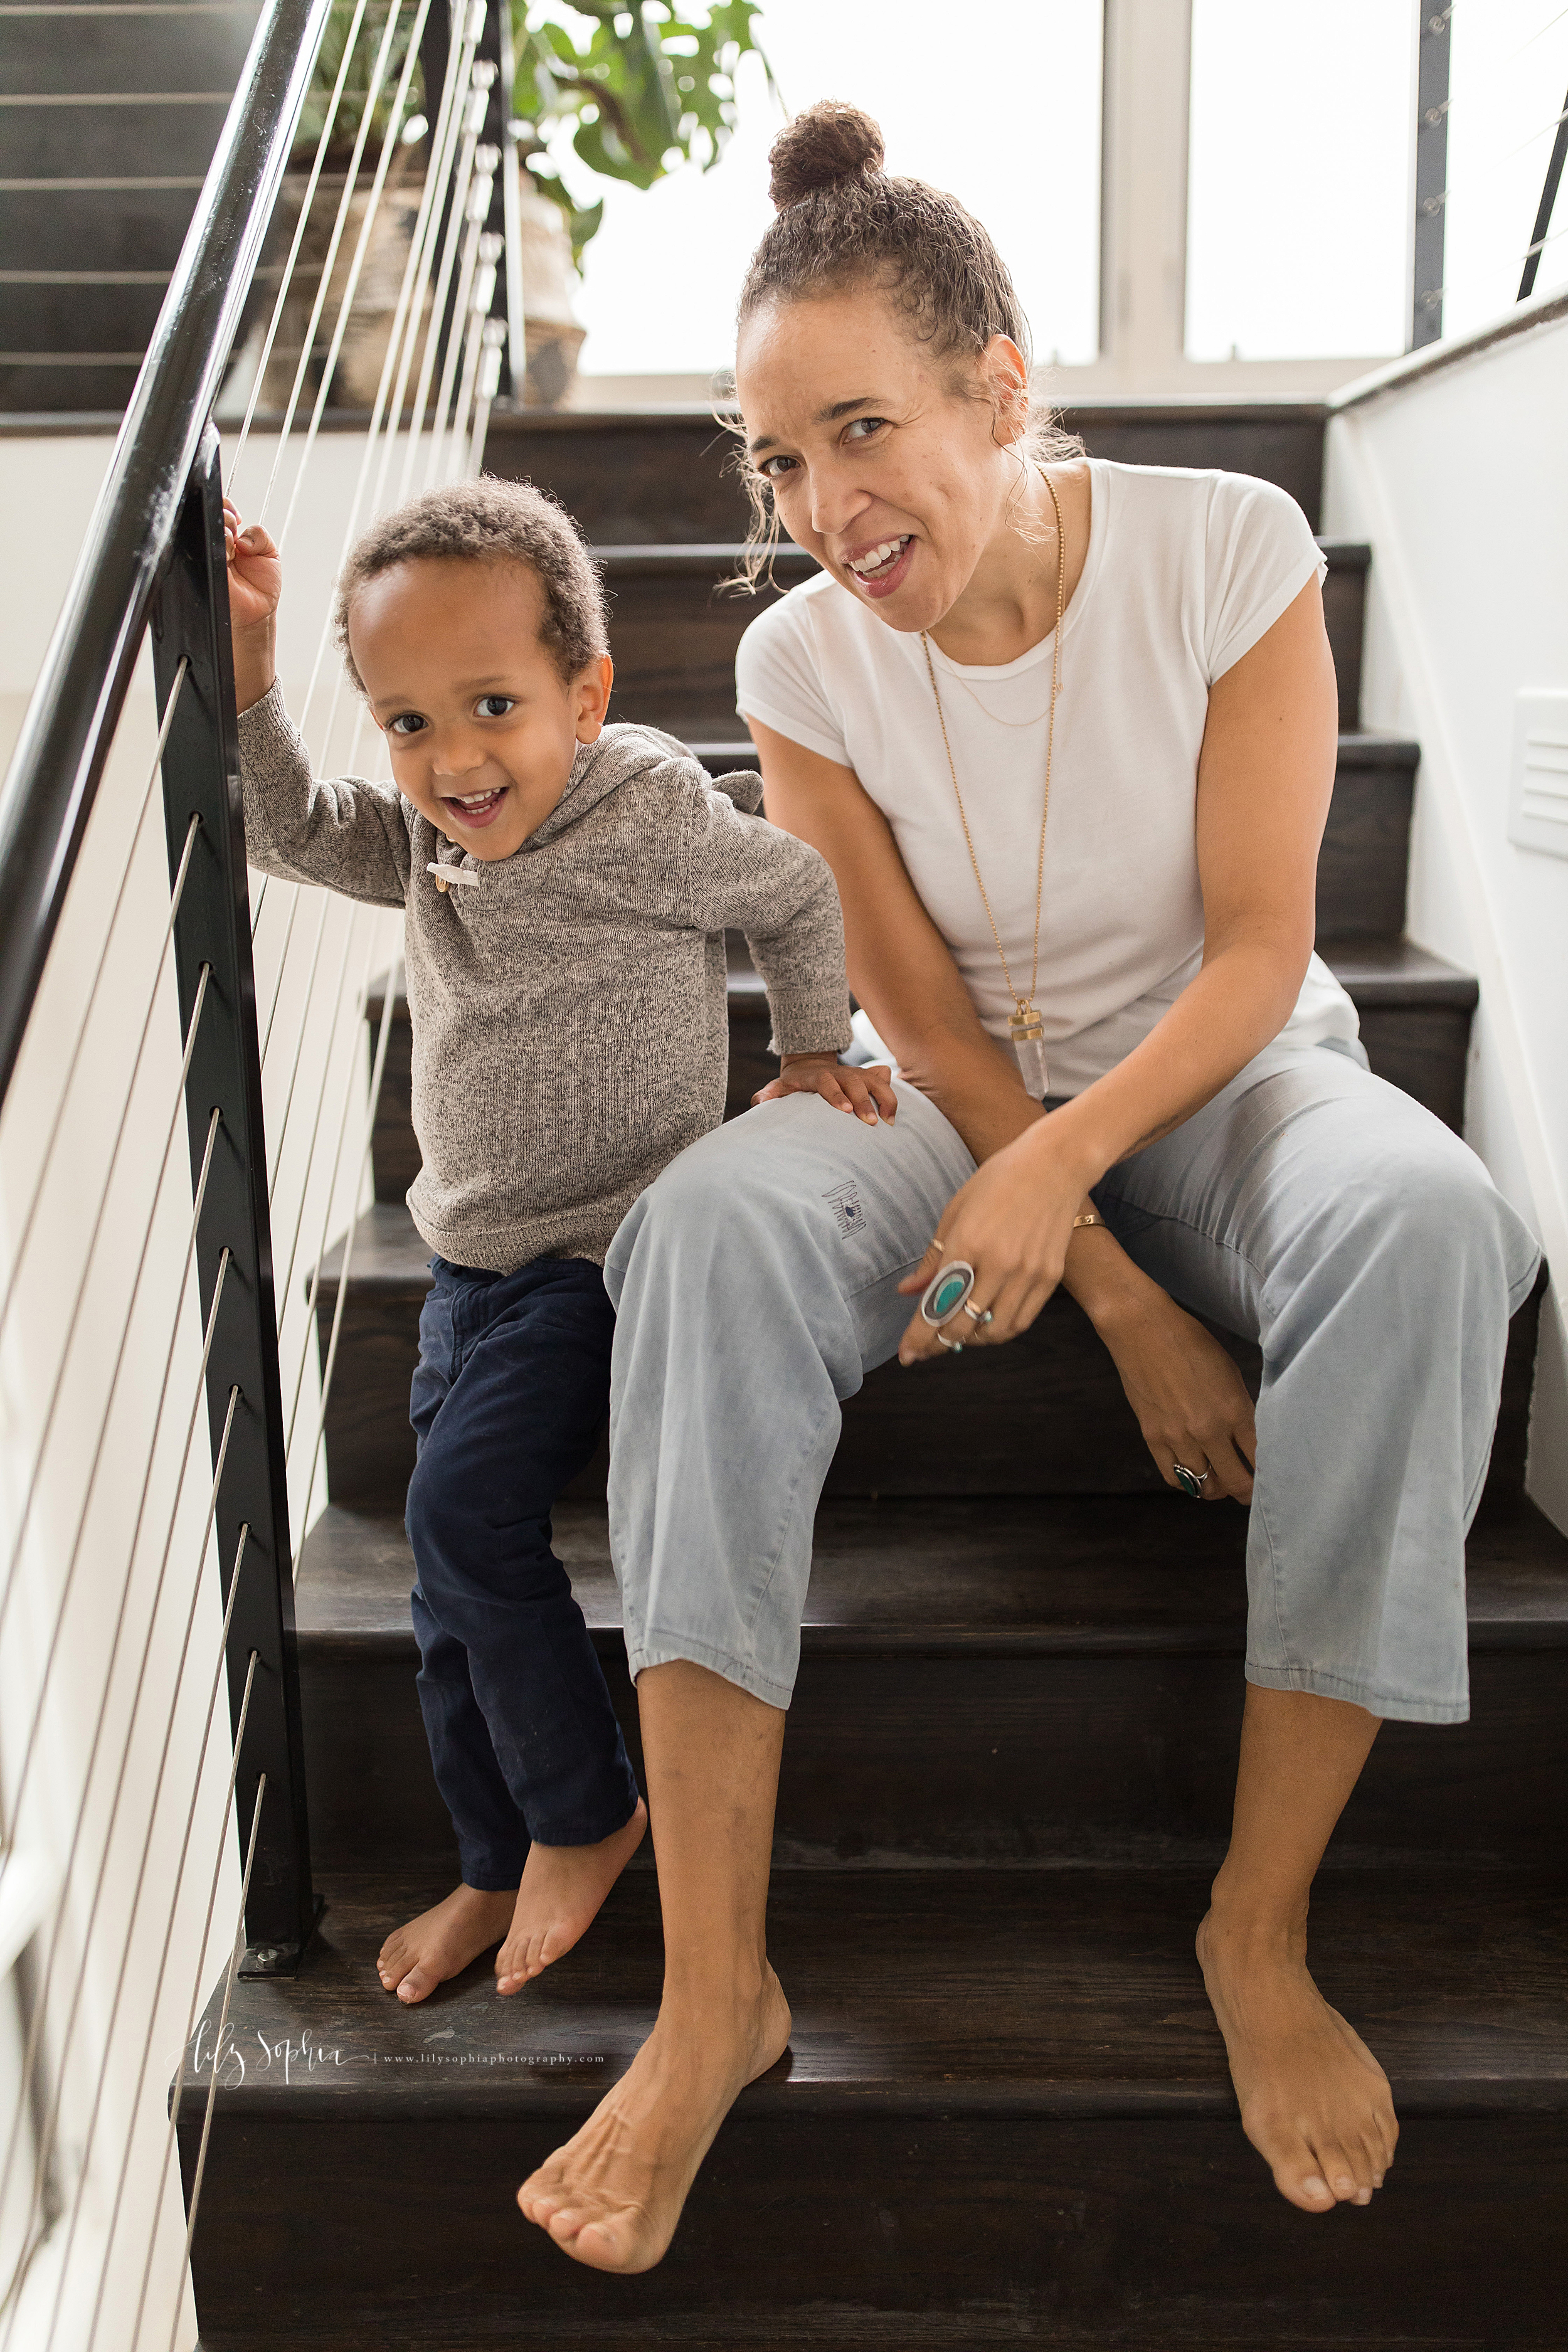 atlanta-midtown-inman-grant-park-beltline-old-fourth-ward-lily-sophia-photography-in-home-lifestyle-mommy-and-me-session-family-photographer-toddler-boy_0416.jpg